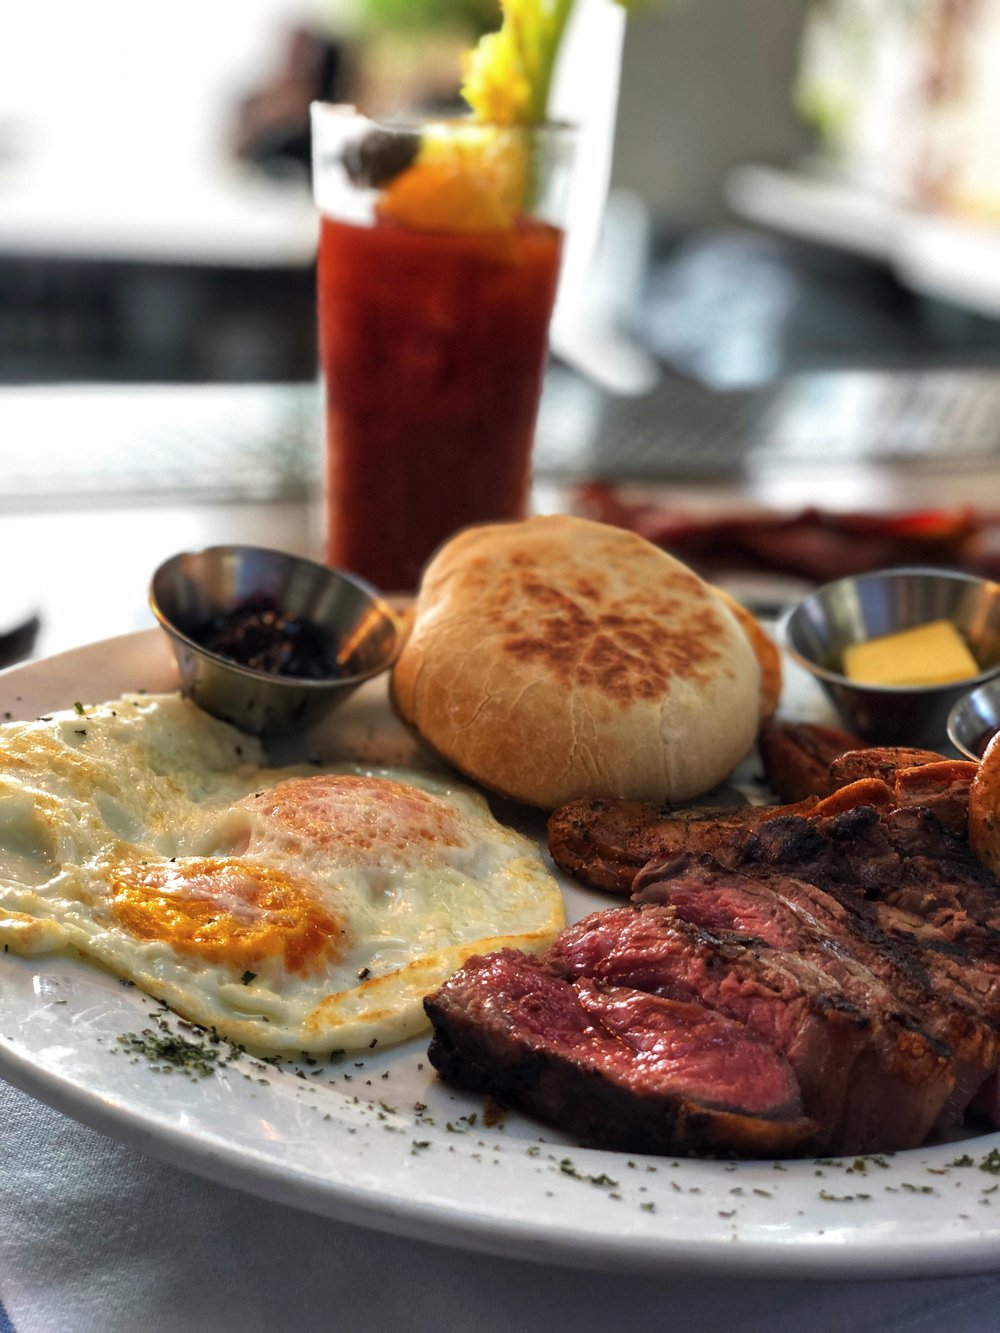 Steak and eggs never looked so good.